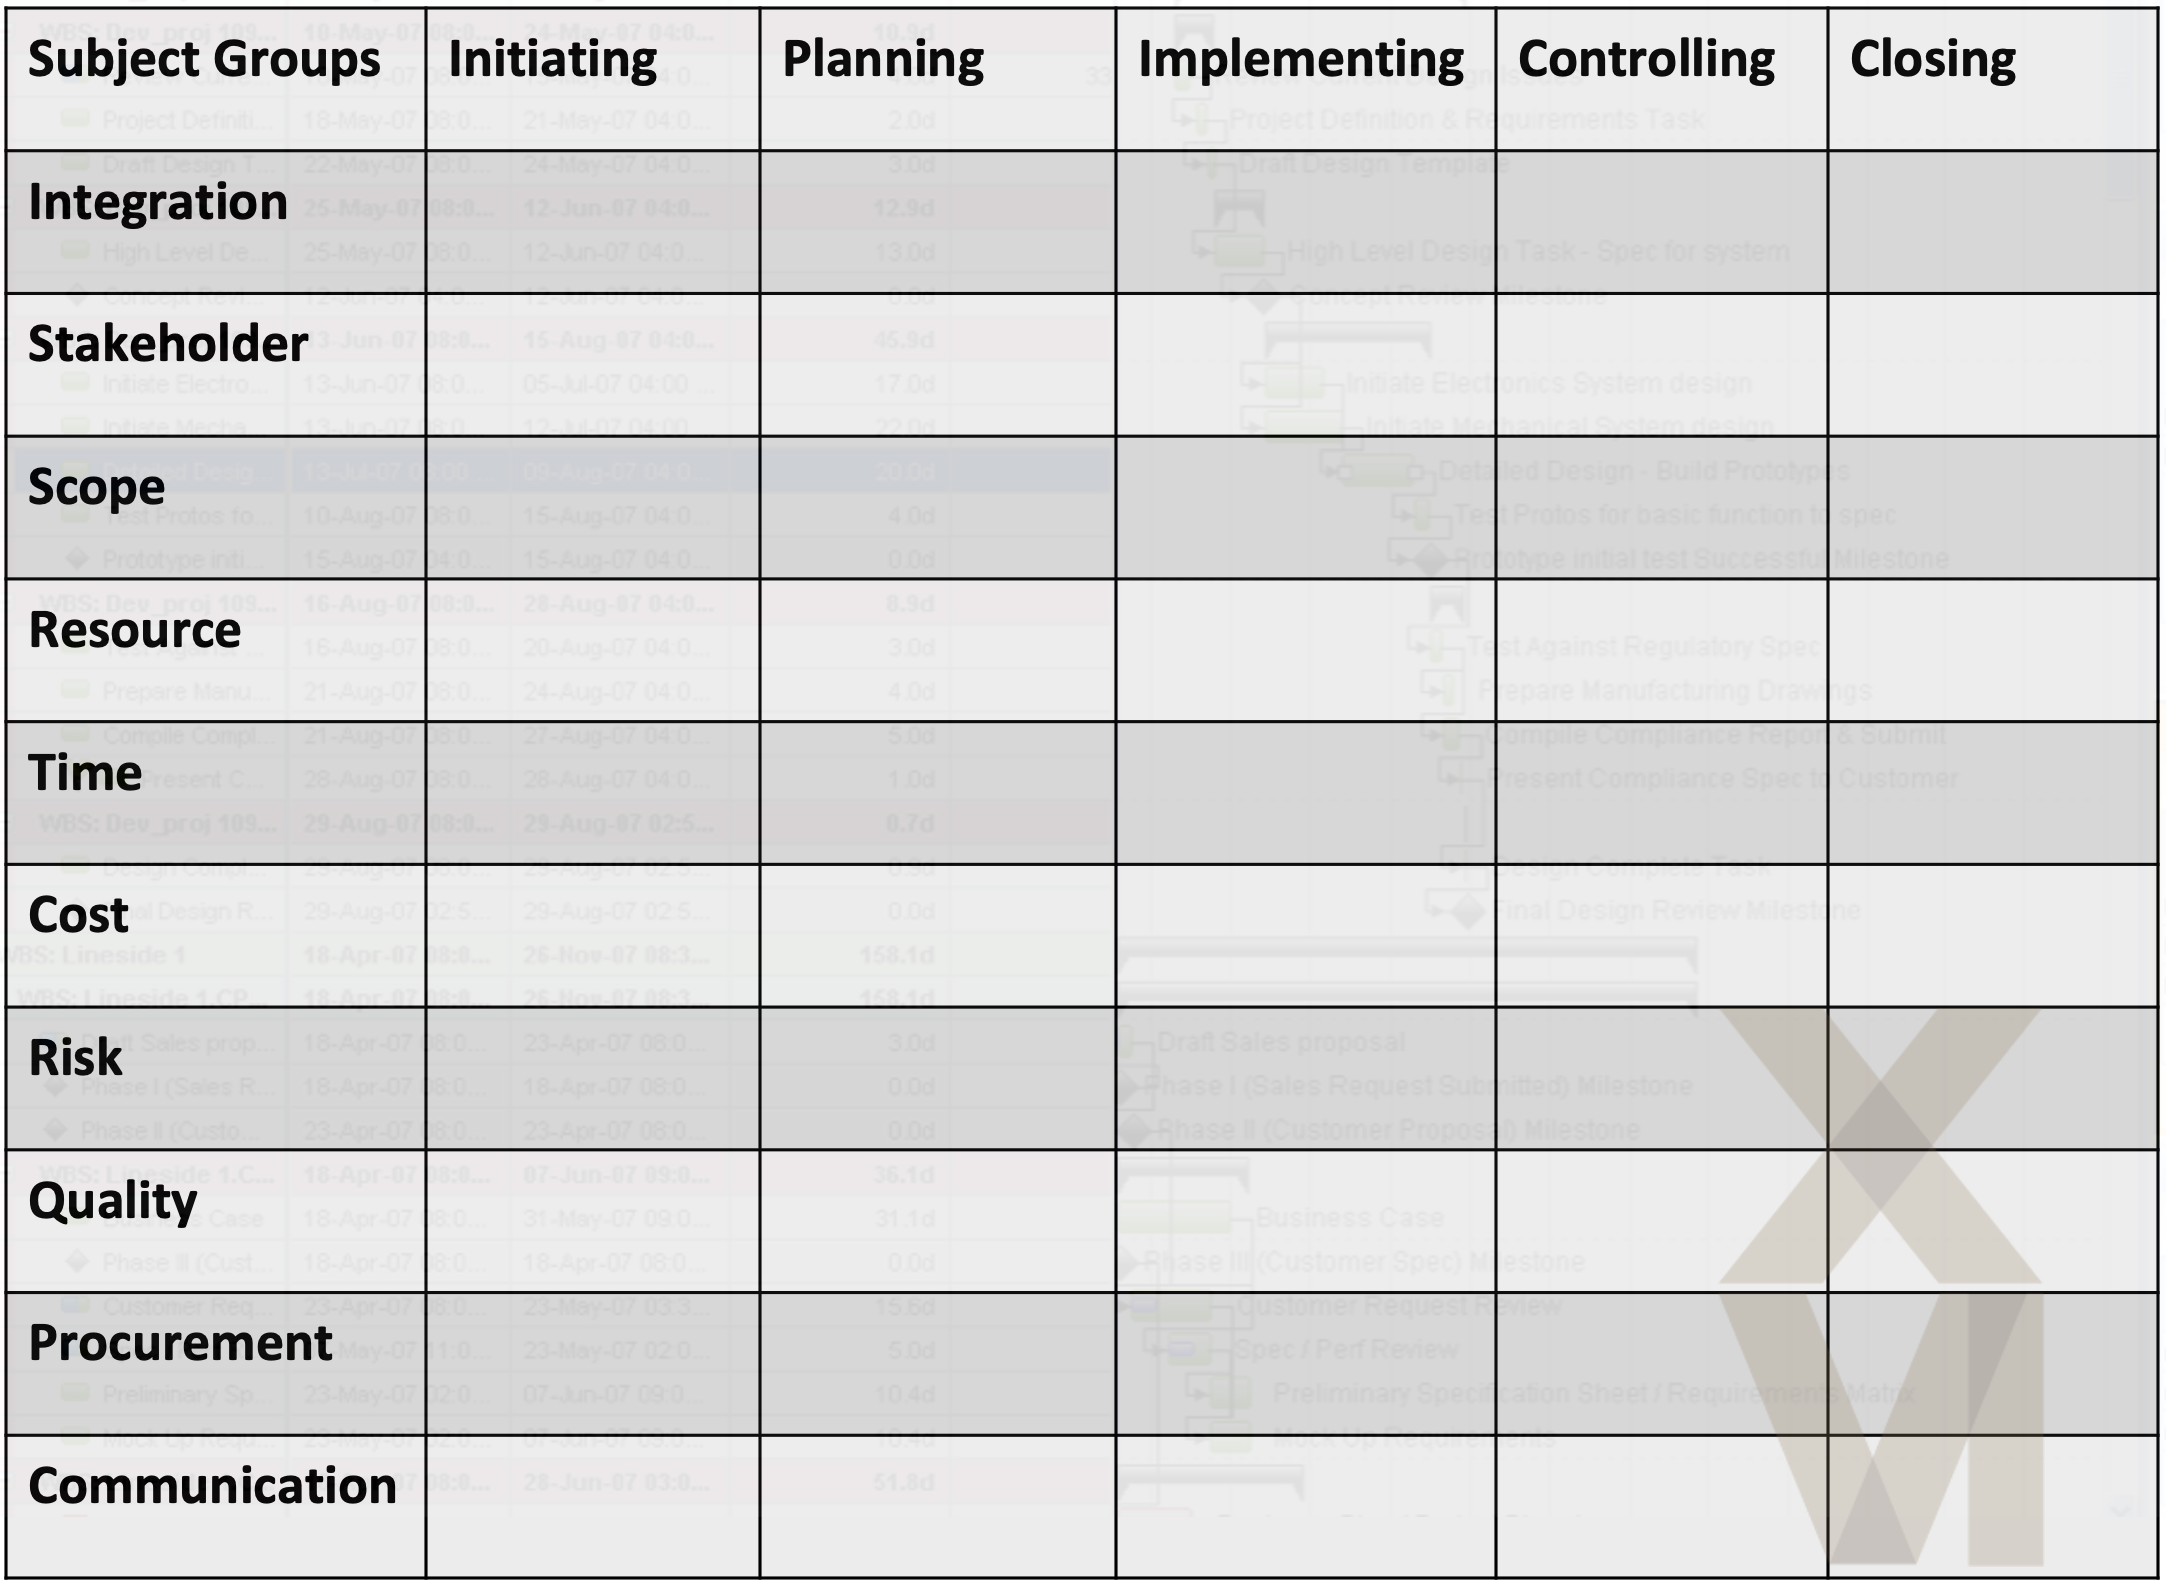 ISO 21500 Process Groups